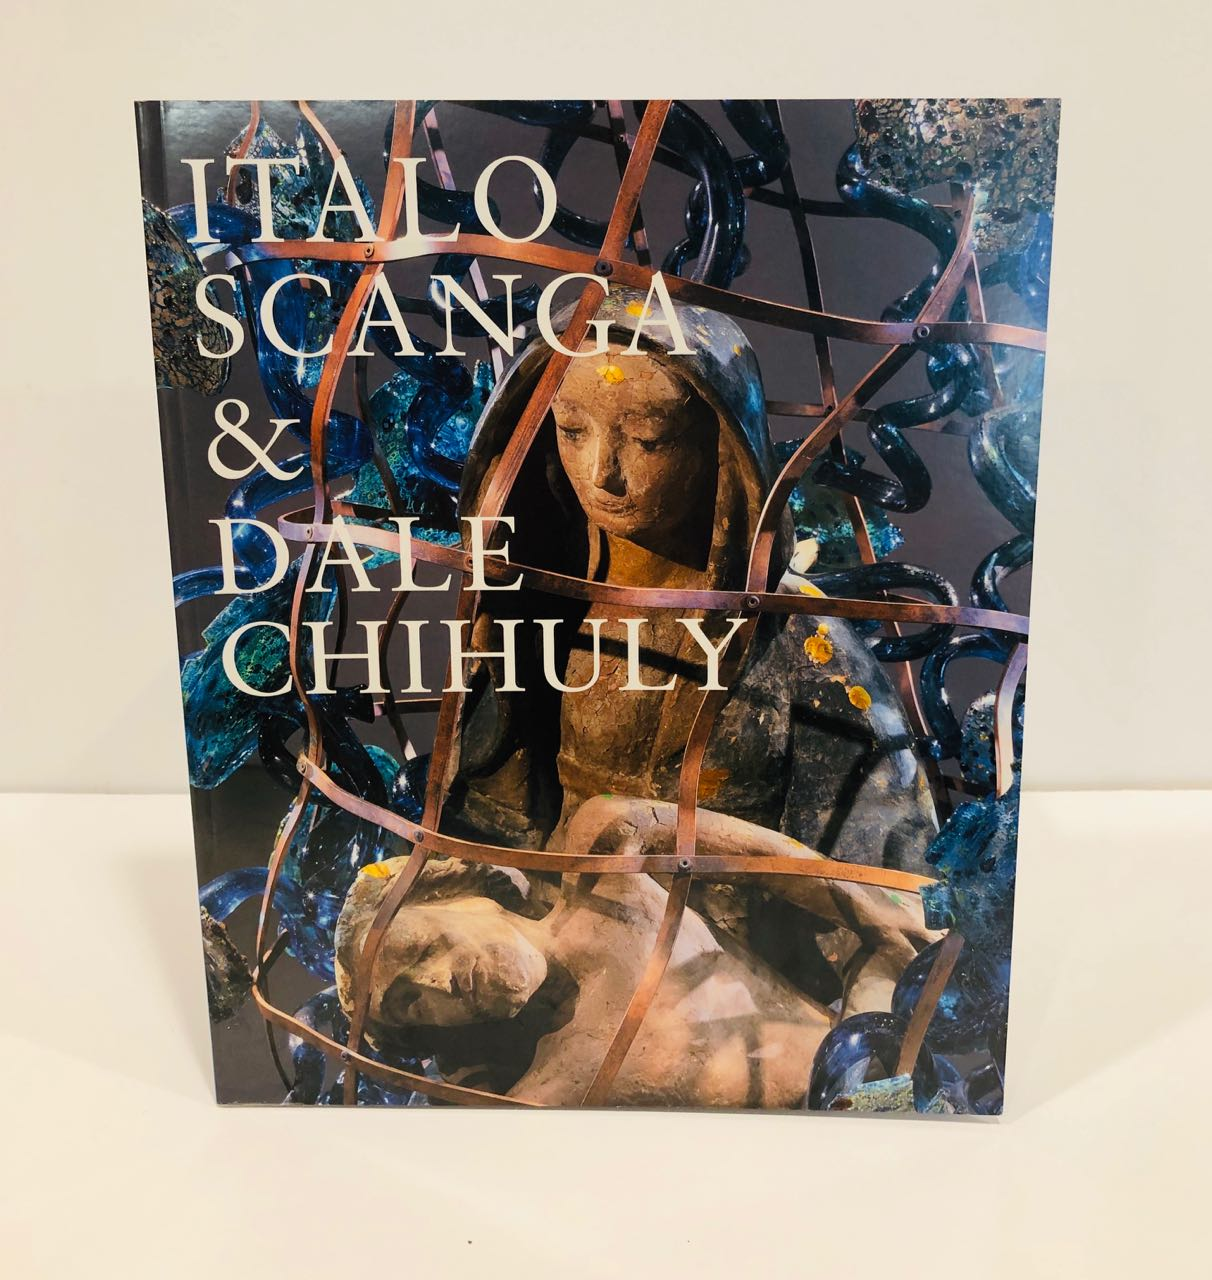 Image for Italo Scanga & Dale Chihuly